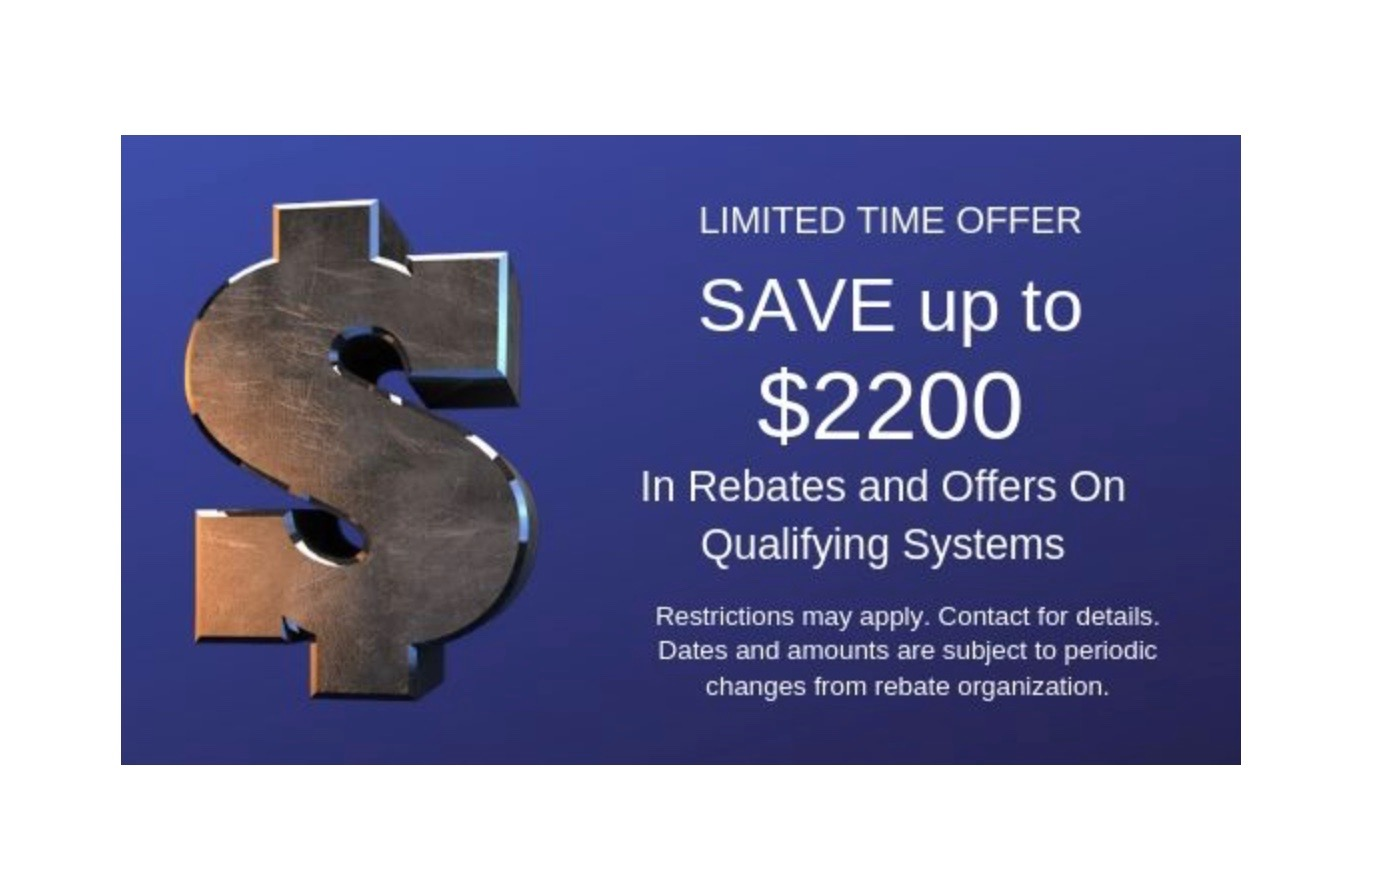 Save up to $2200 on a new furnace and AC. Call K & J for details.